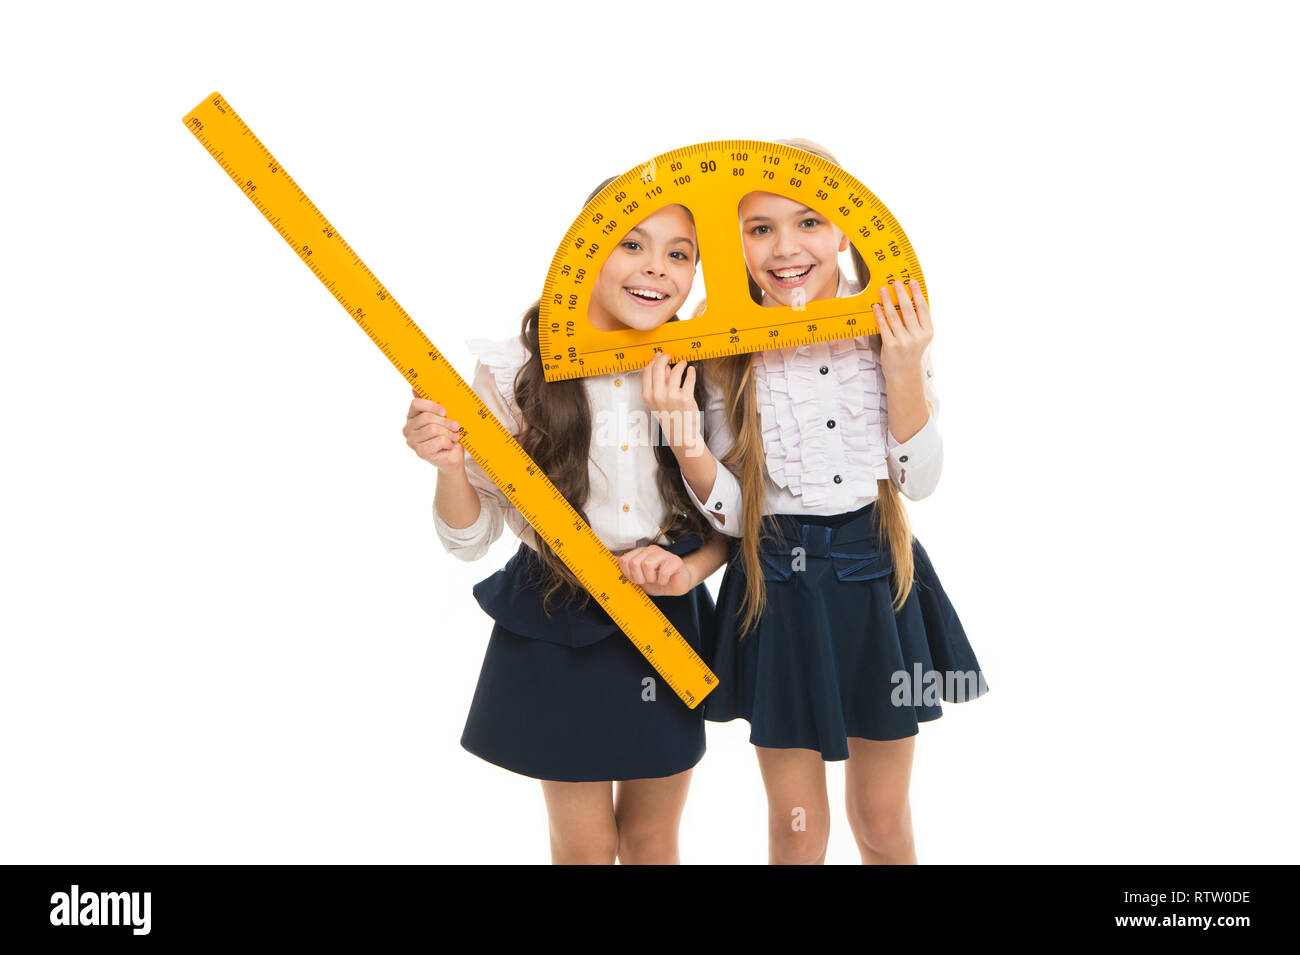 Having fun in school. Pupil cute girls with big rulers. School children with measuring instruments. Geometry favorite subject. Education and school concept. School students learning geometry. - Stock Image